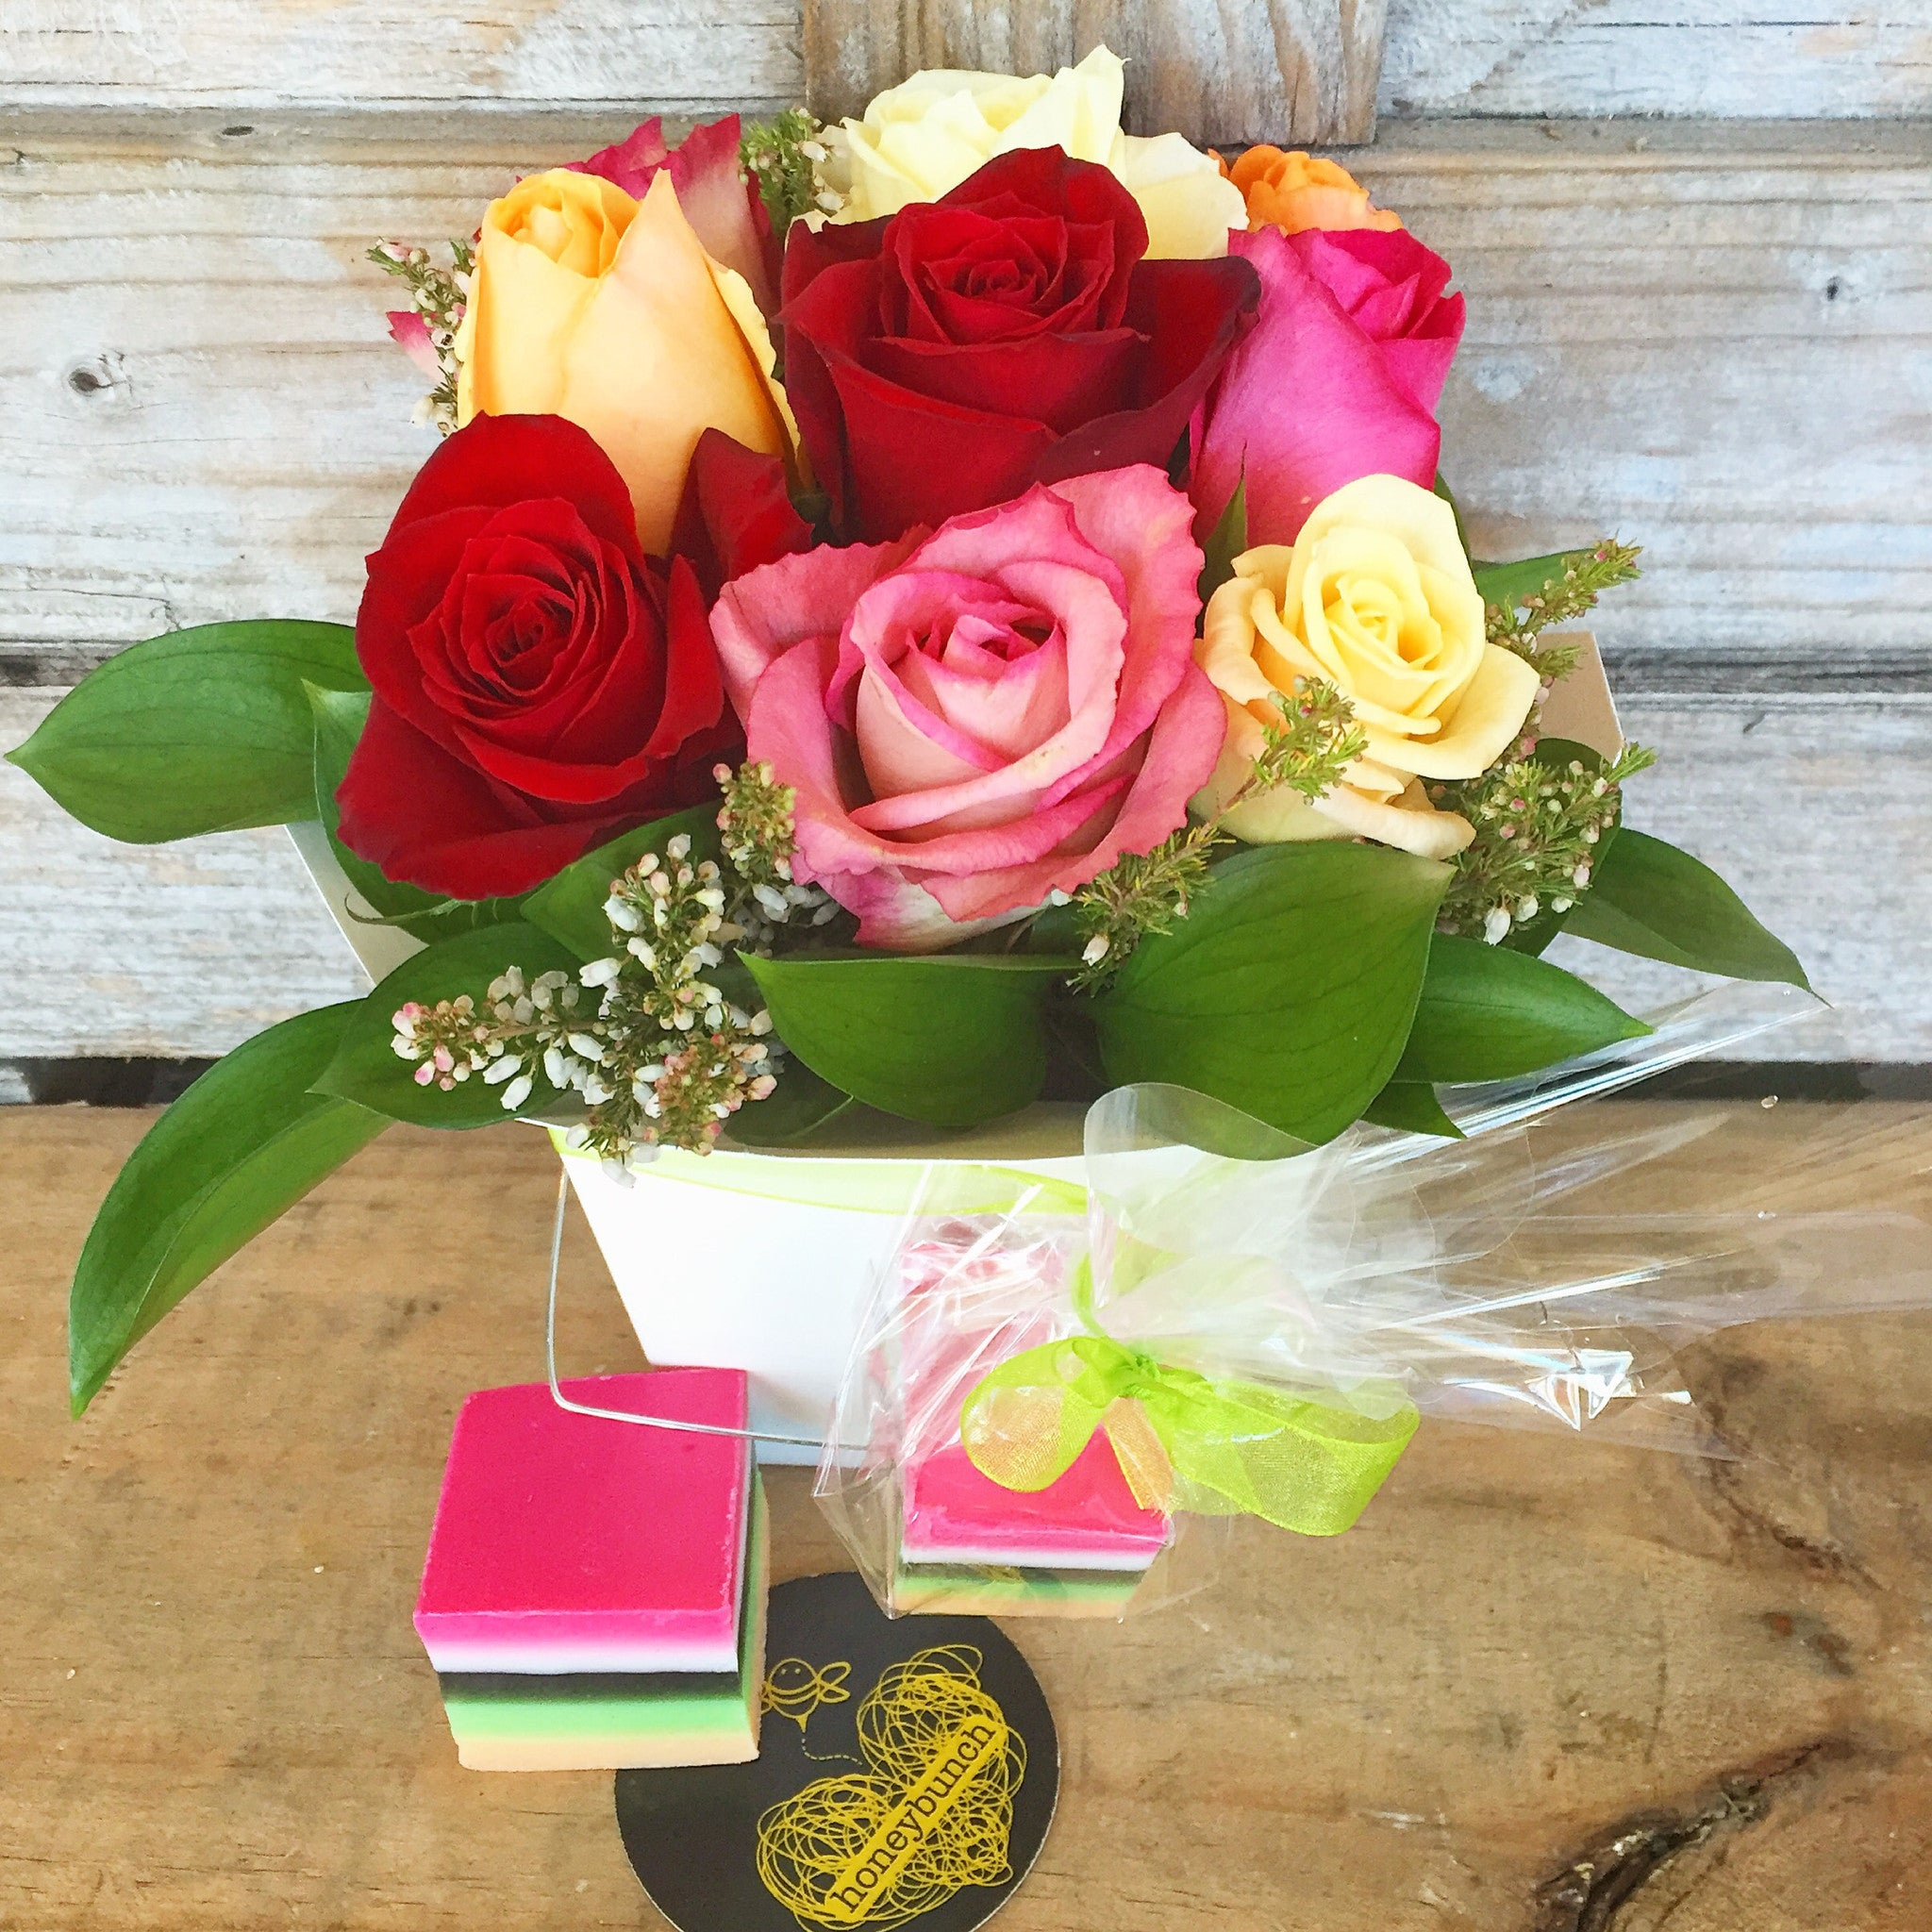 All sorts of Lovely Rose Flower Pocket